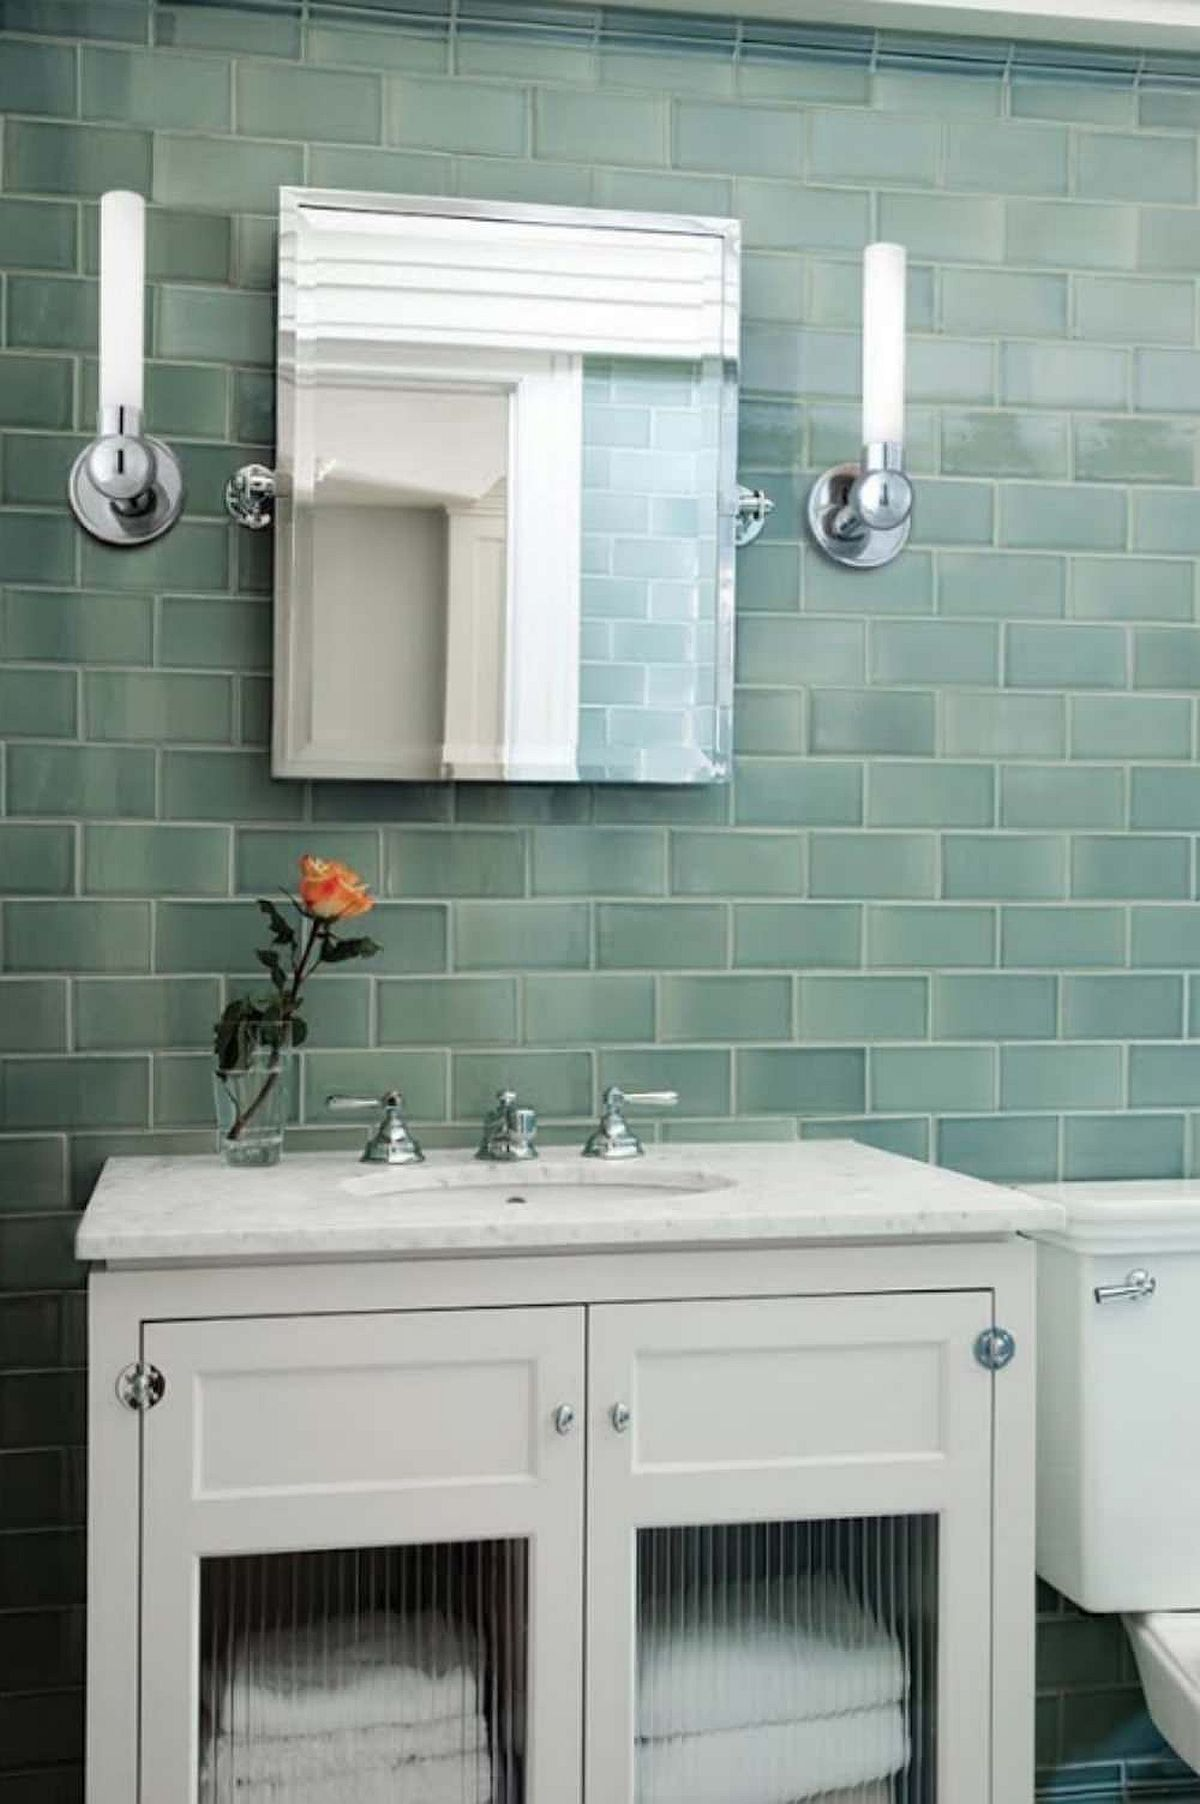 Tiles in green for the contemporary bathroom with white vanity and smart lighting